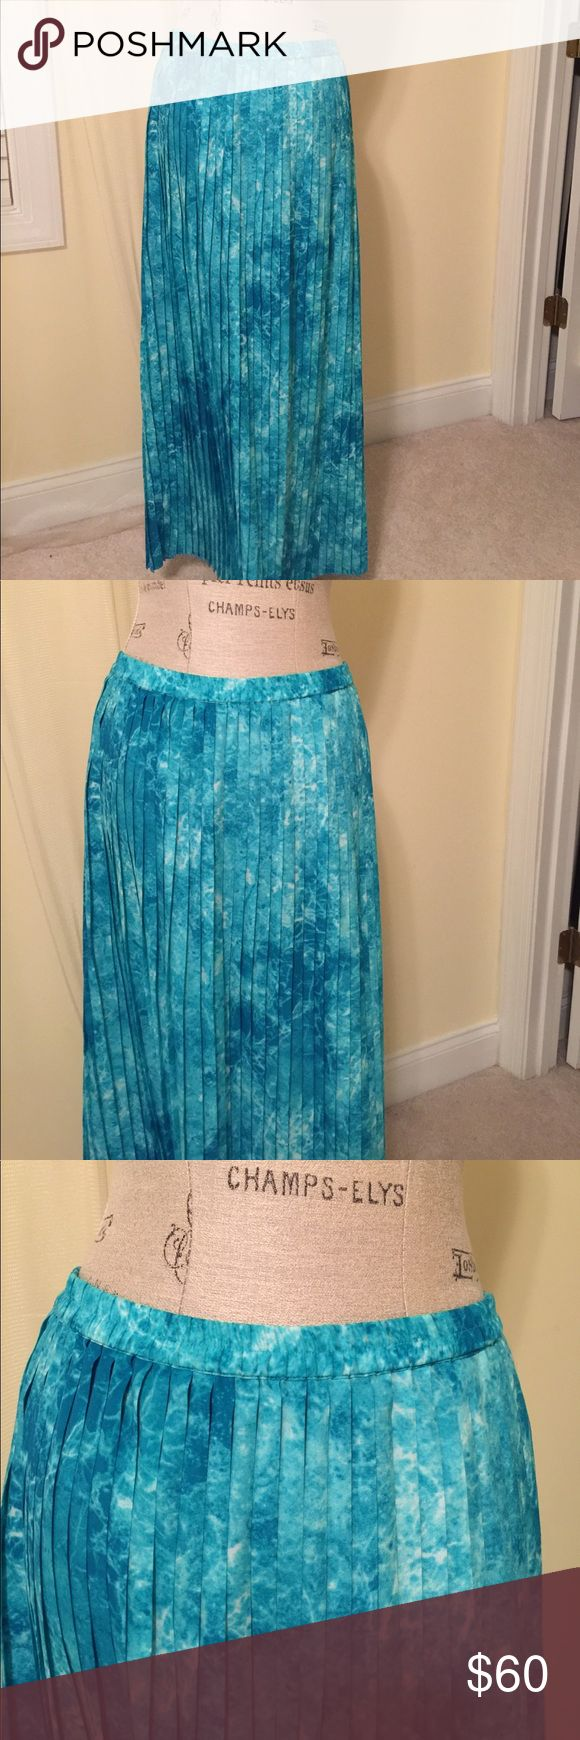 Michael Kors pleated maxi skirt. Michael Kors turquoise print pleated maxi skirt. Worn once-excellent condition. Great for spring/summer outings or to the beach. Michael Kors Skirts Maxi